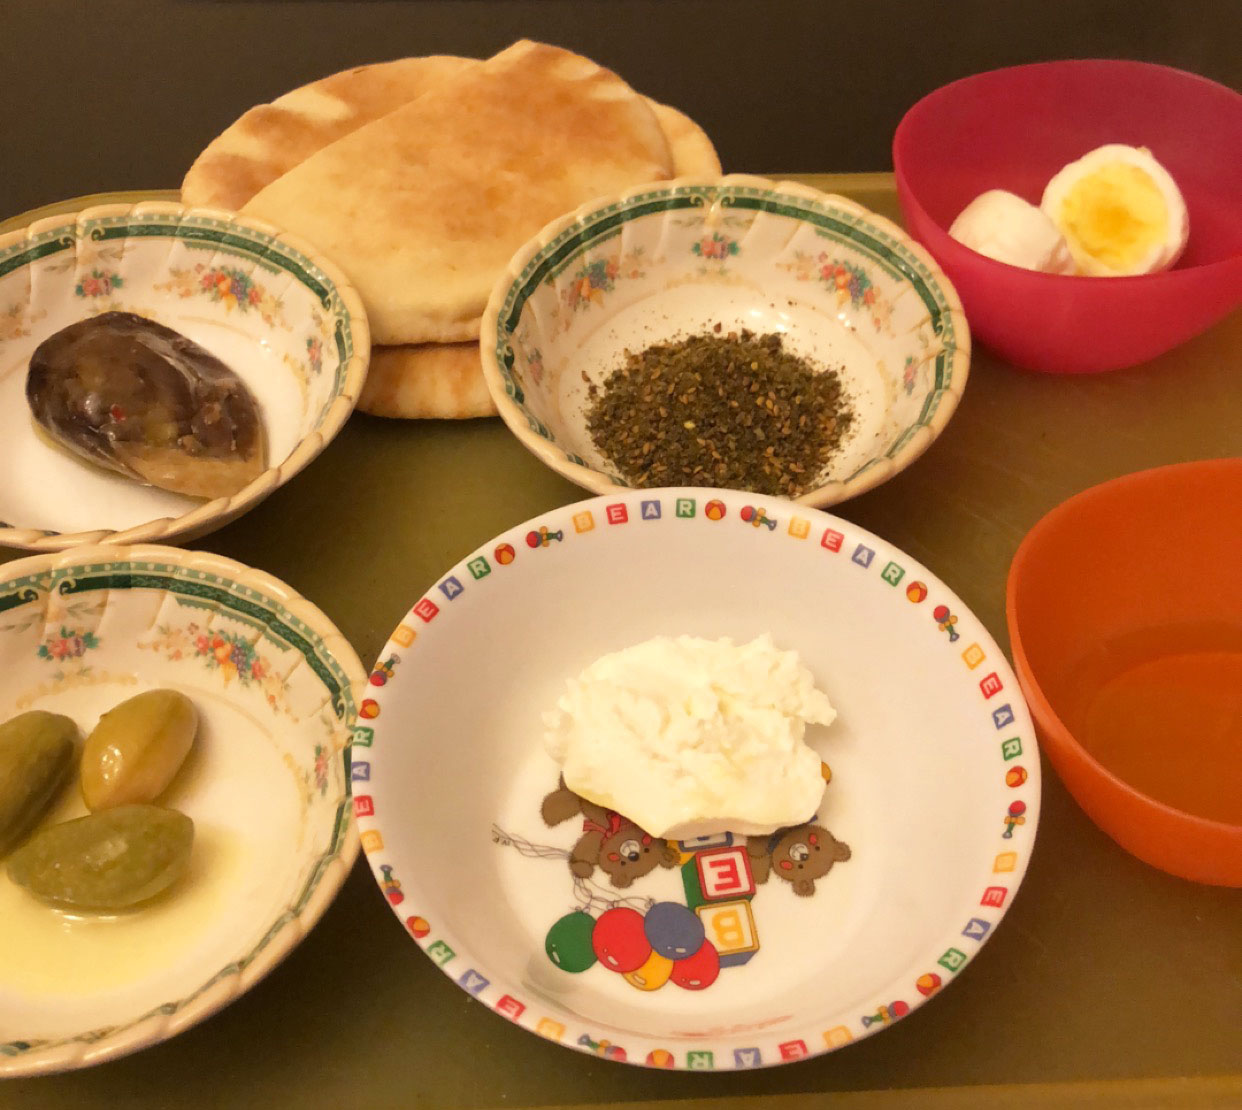 Here is a more traditional breakfast prepared by my host mom. This was a meal that I was really worried I wouldn't like, and at home it is something I would have ignored, but the combination of pita, zaatar, olive oil and labneh is actually really good! There have been some things that I haven't been able to get on board with, like the eggplant (also pictured), but I was proud of myself for trying it! Photo credit: Arguin, 2019